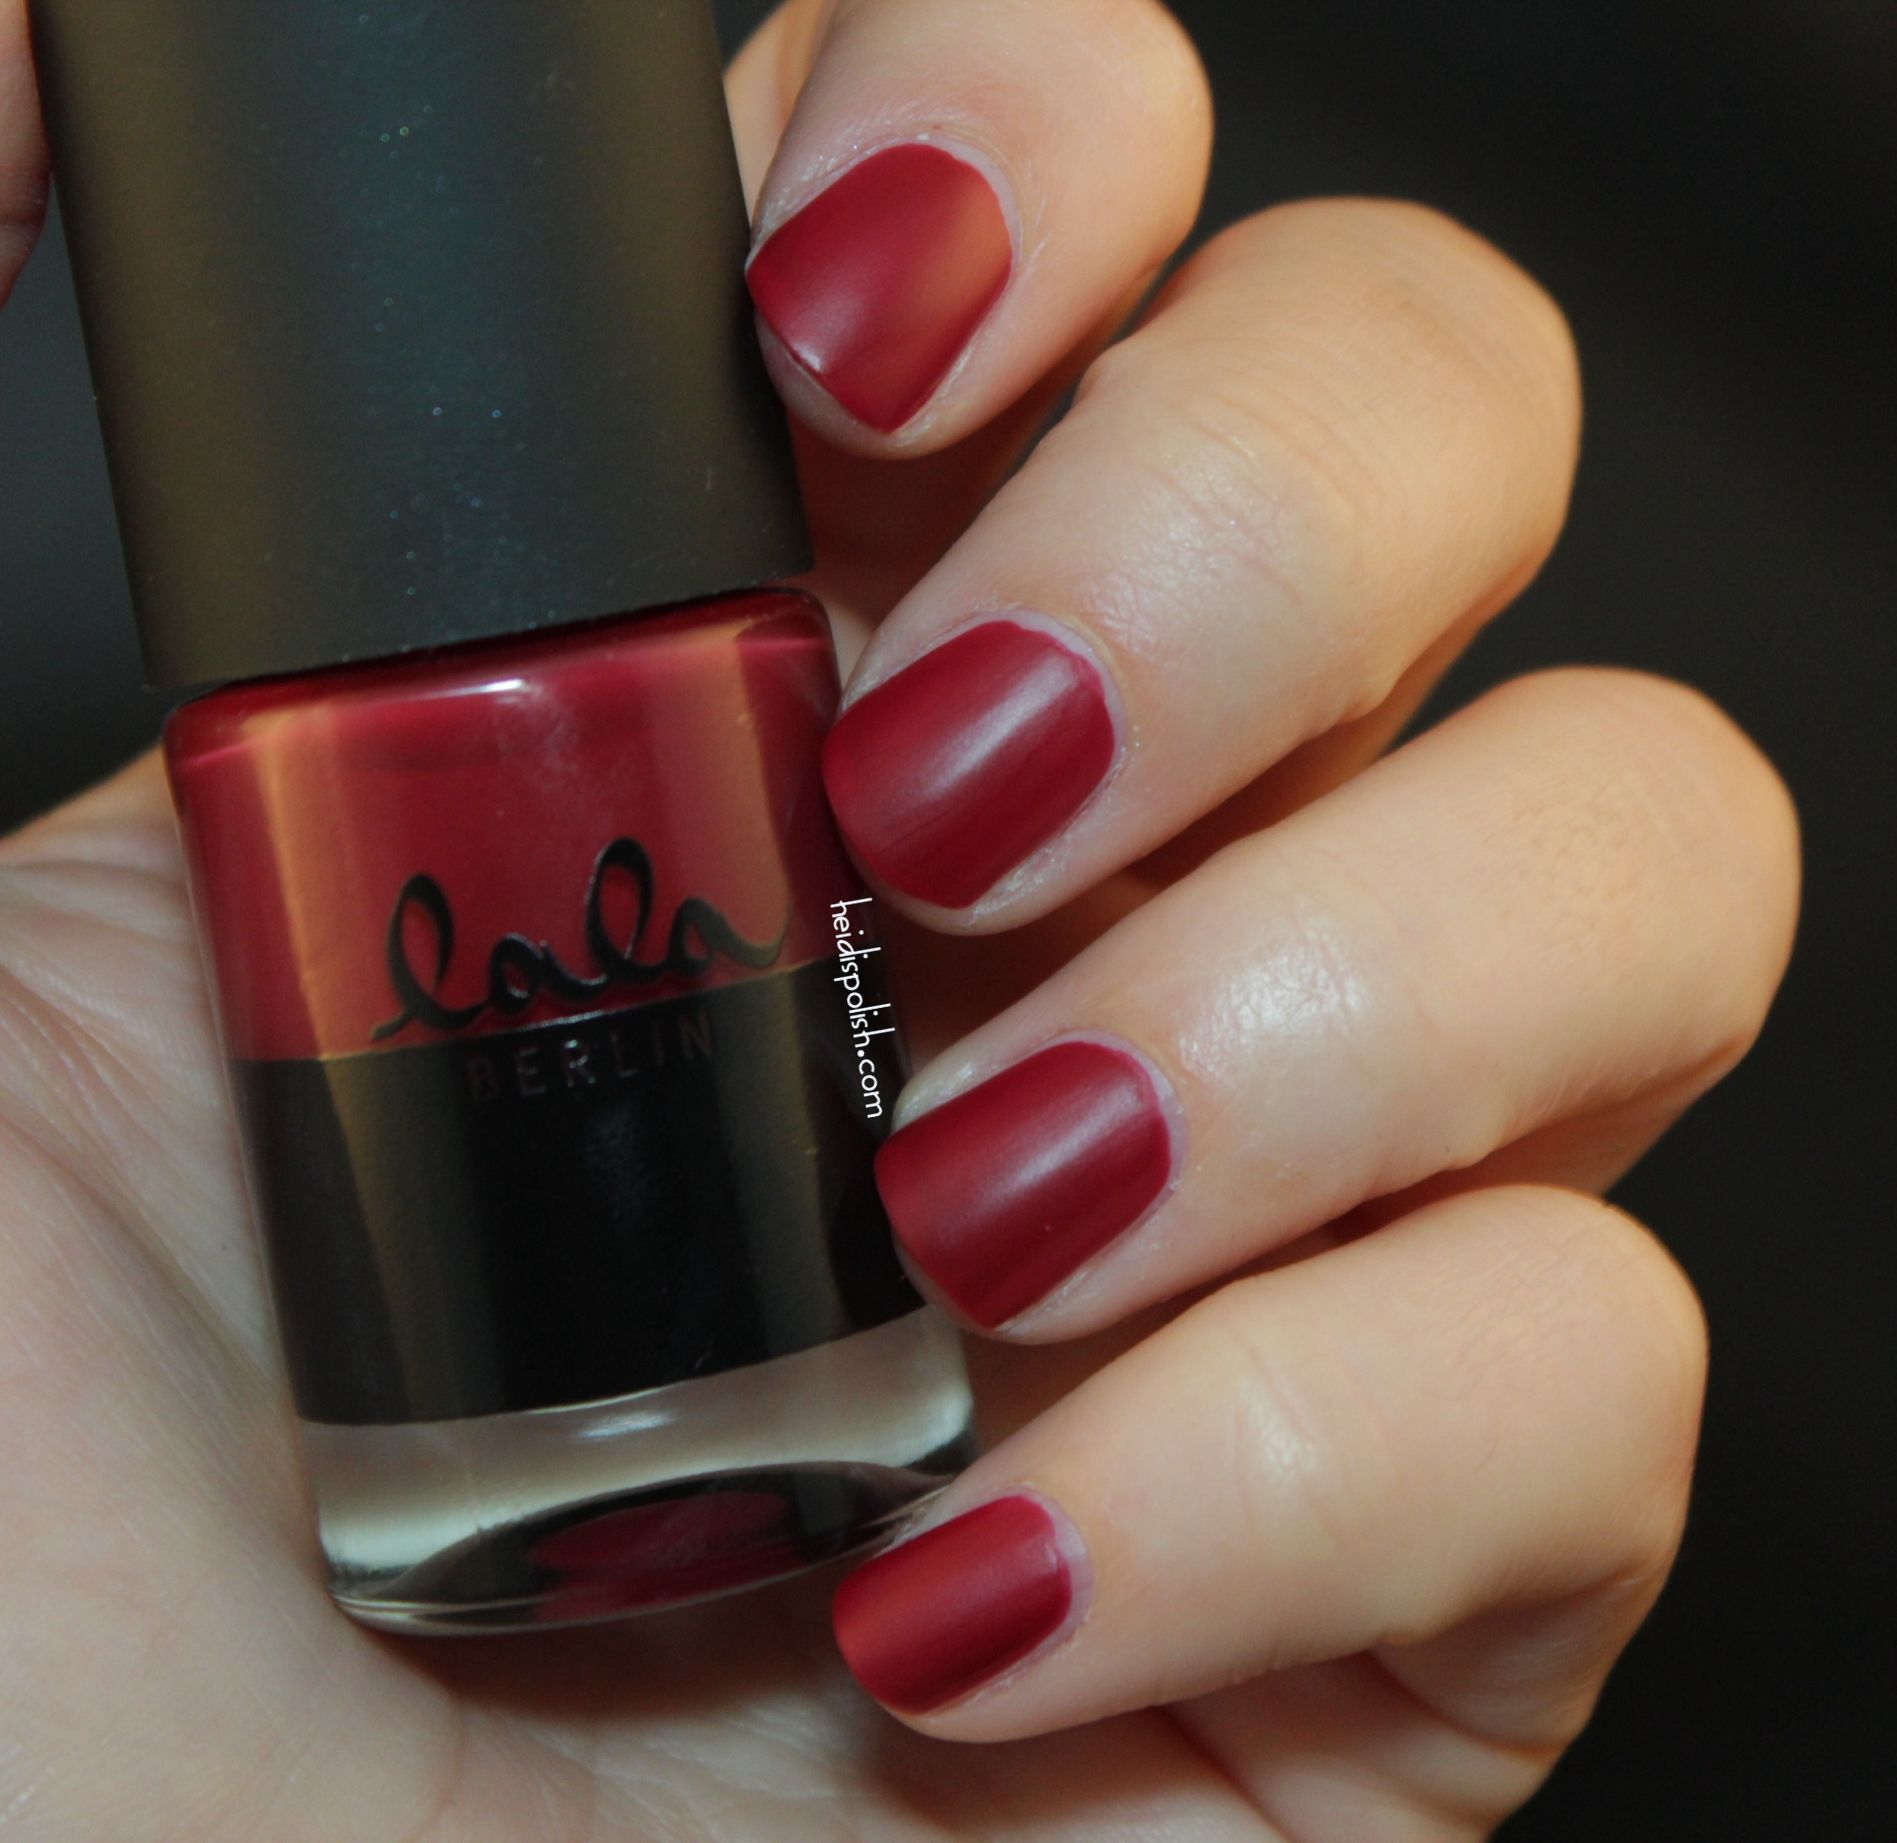 catrice for lala berlin c05 ruling red matte dark red nail polish